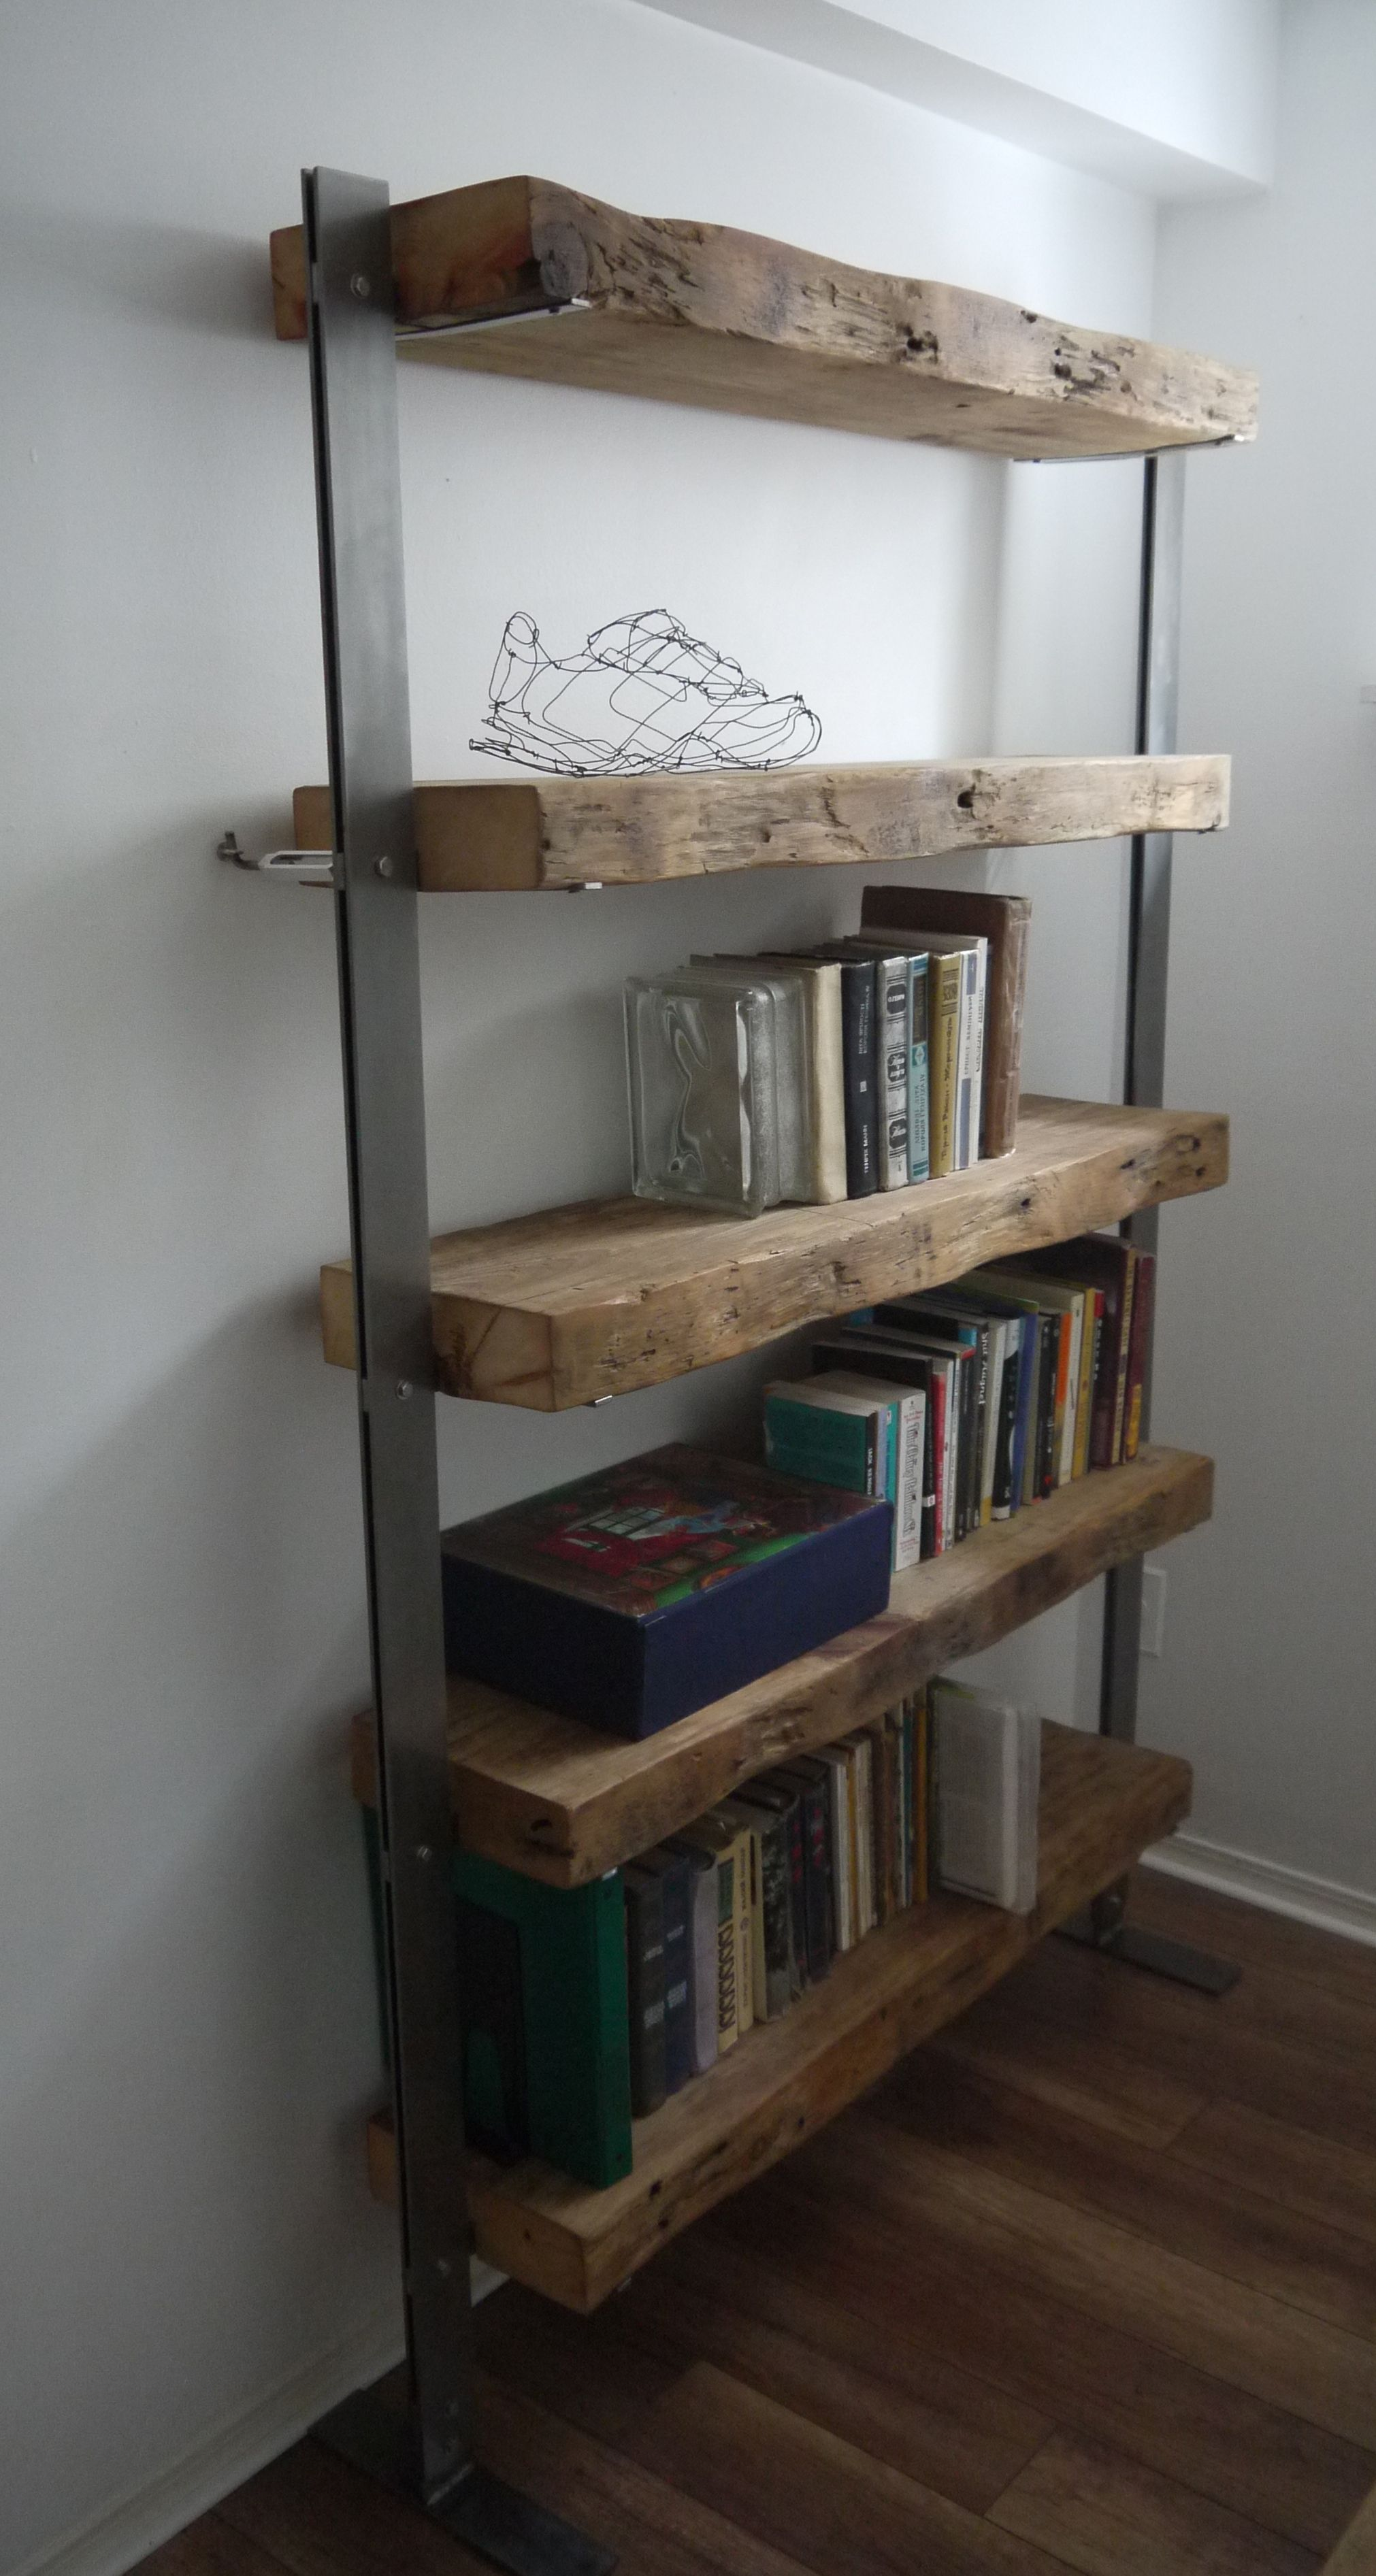 Images about old barn wood furniture on pinterest - Reclaimed Wood Shelf Unit By Ticicno Design Www Ticinodesign Com